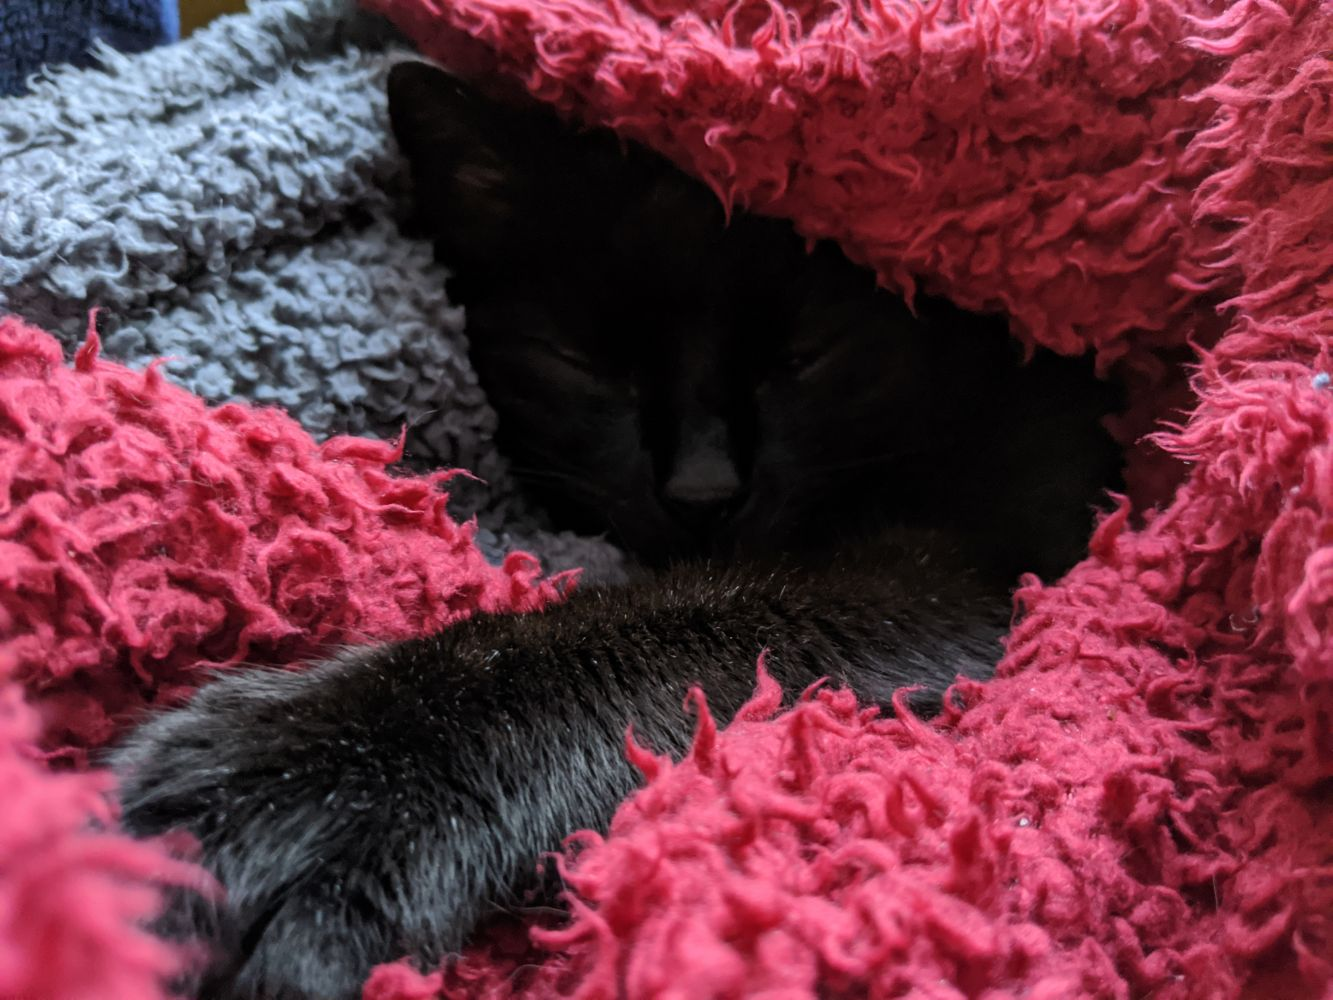 Black cat, with his face barely visible, nestled in a little cave under a red blanket, with his arm outstretched